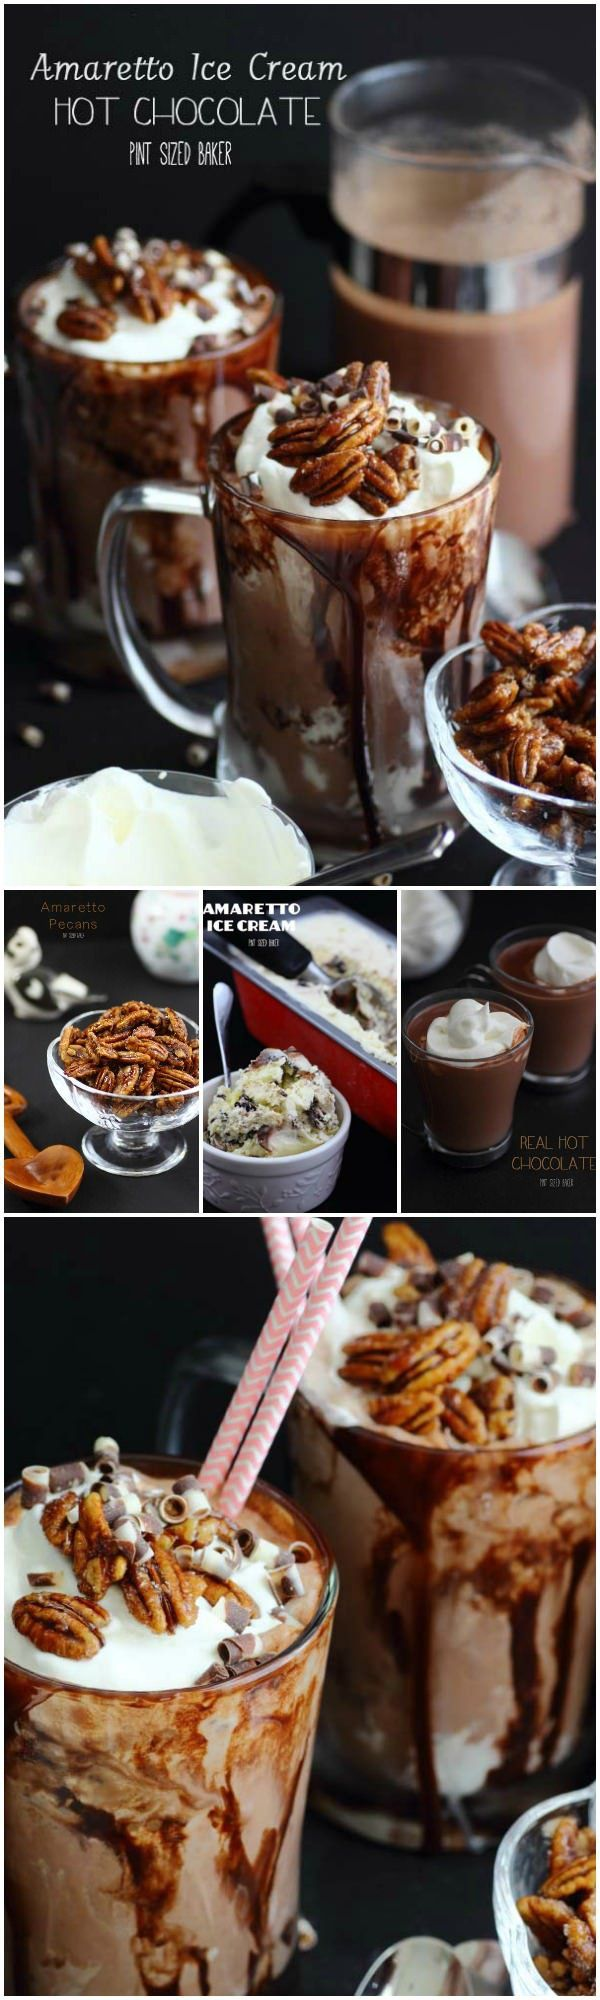 These Amaretto Hot Chocolate Floats are perfect for any night. Made with real Amaretto ice cream and real Hot Chocolate, it's a decadent dessert.